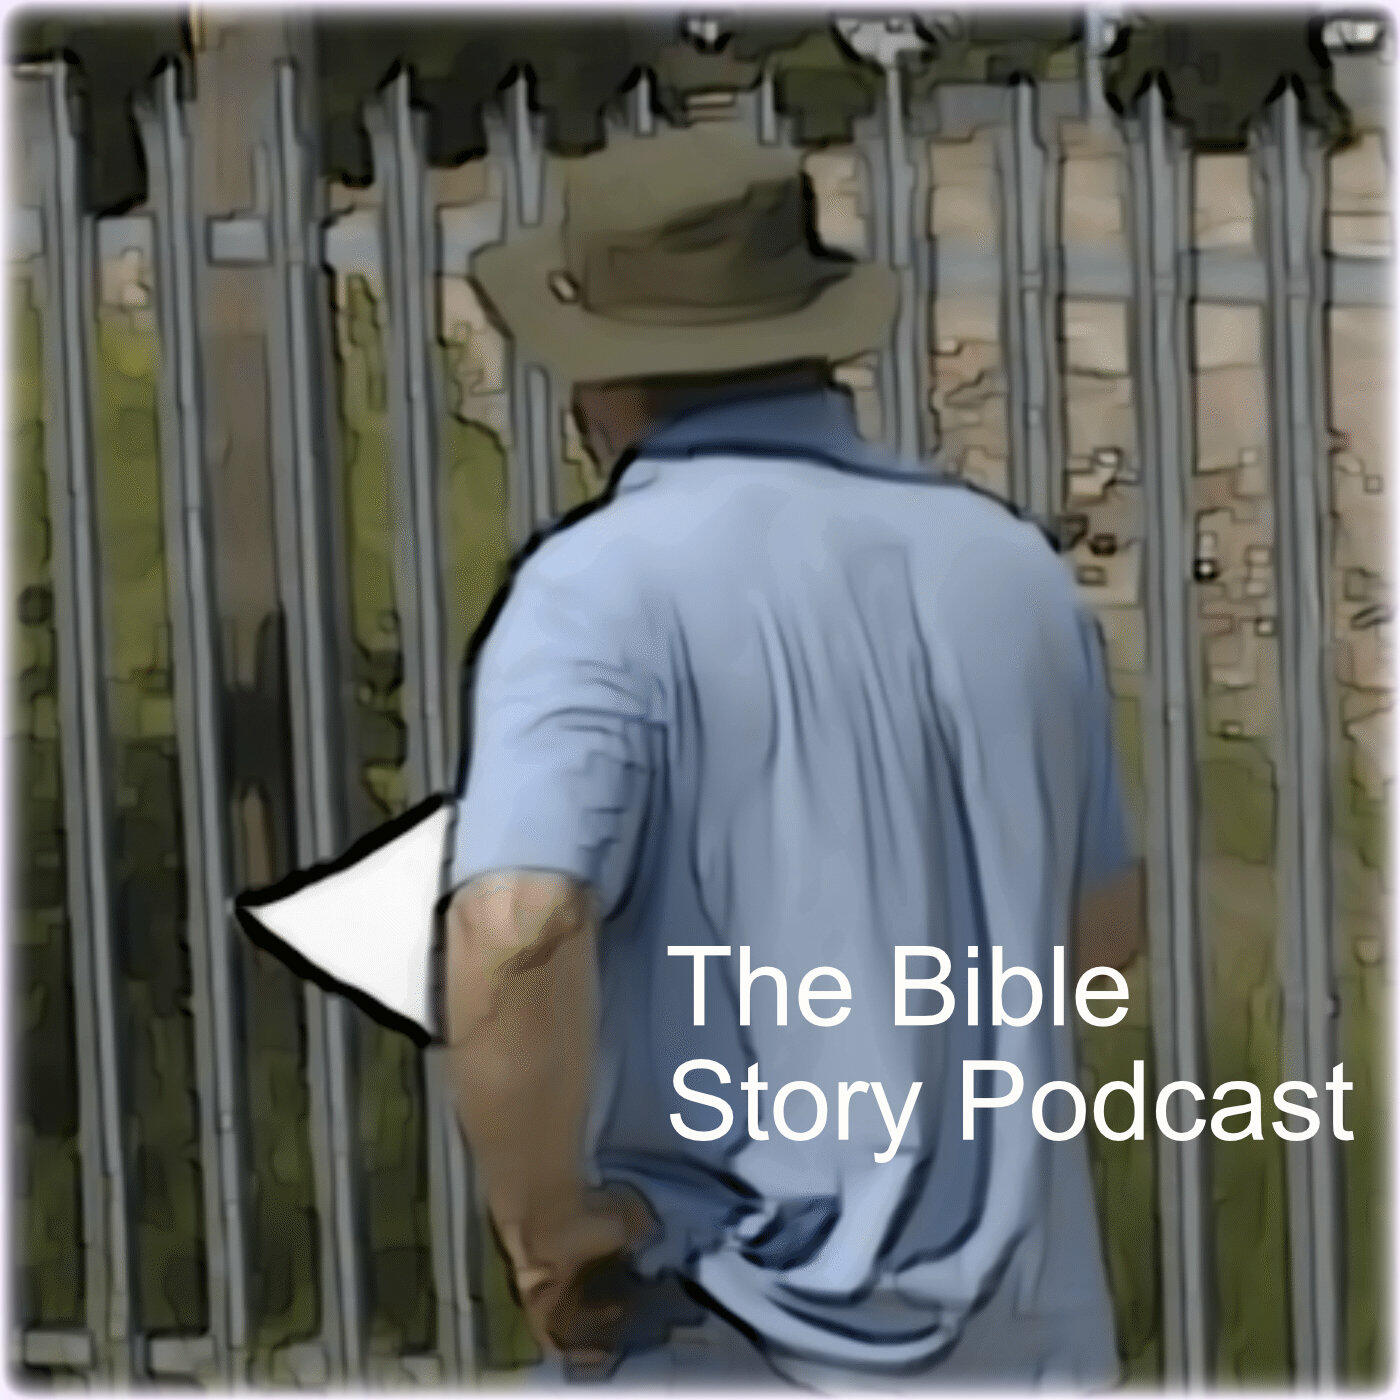 The Bible Story Podcast